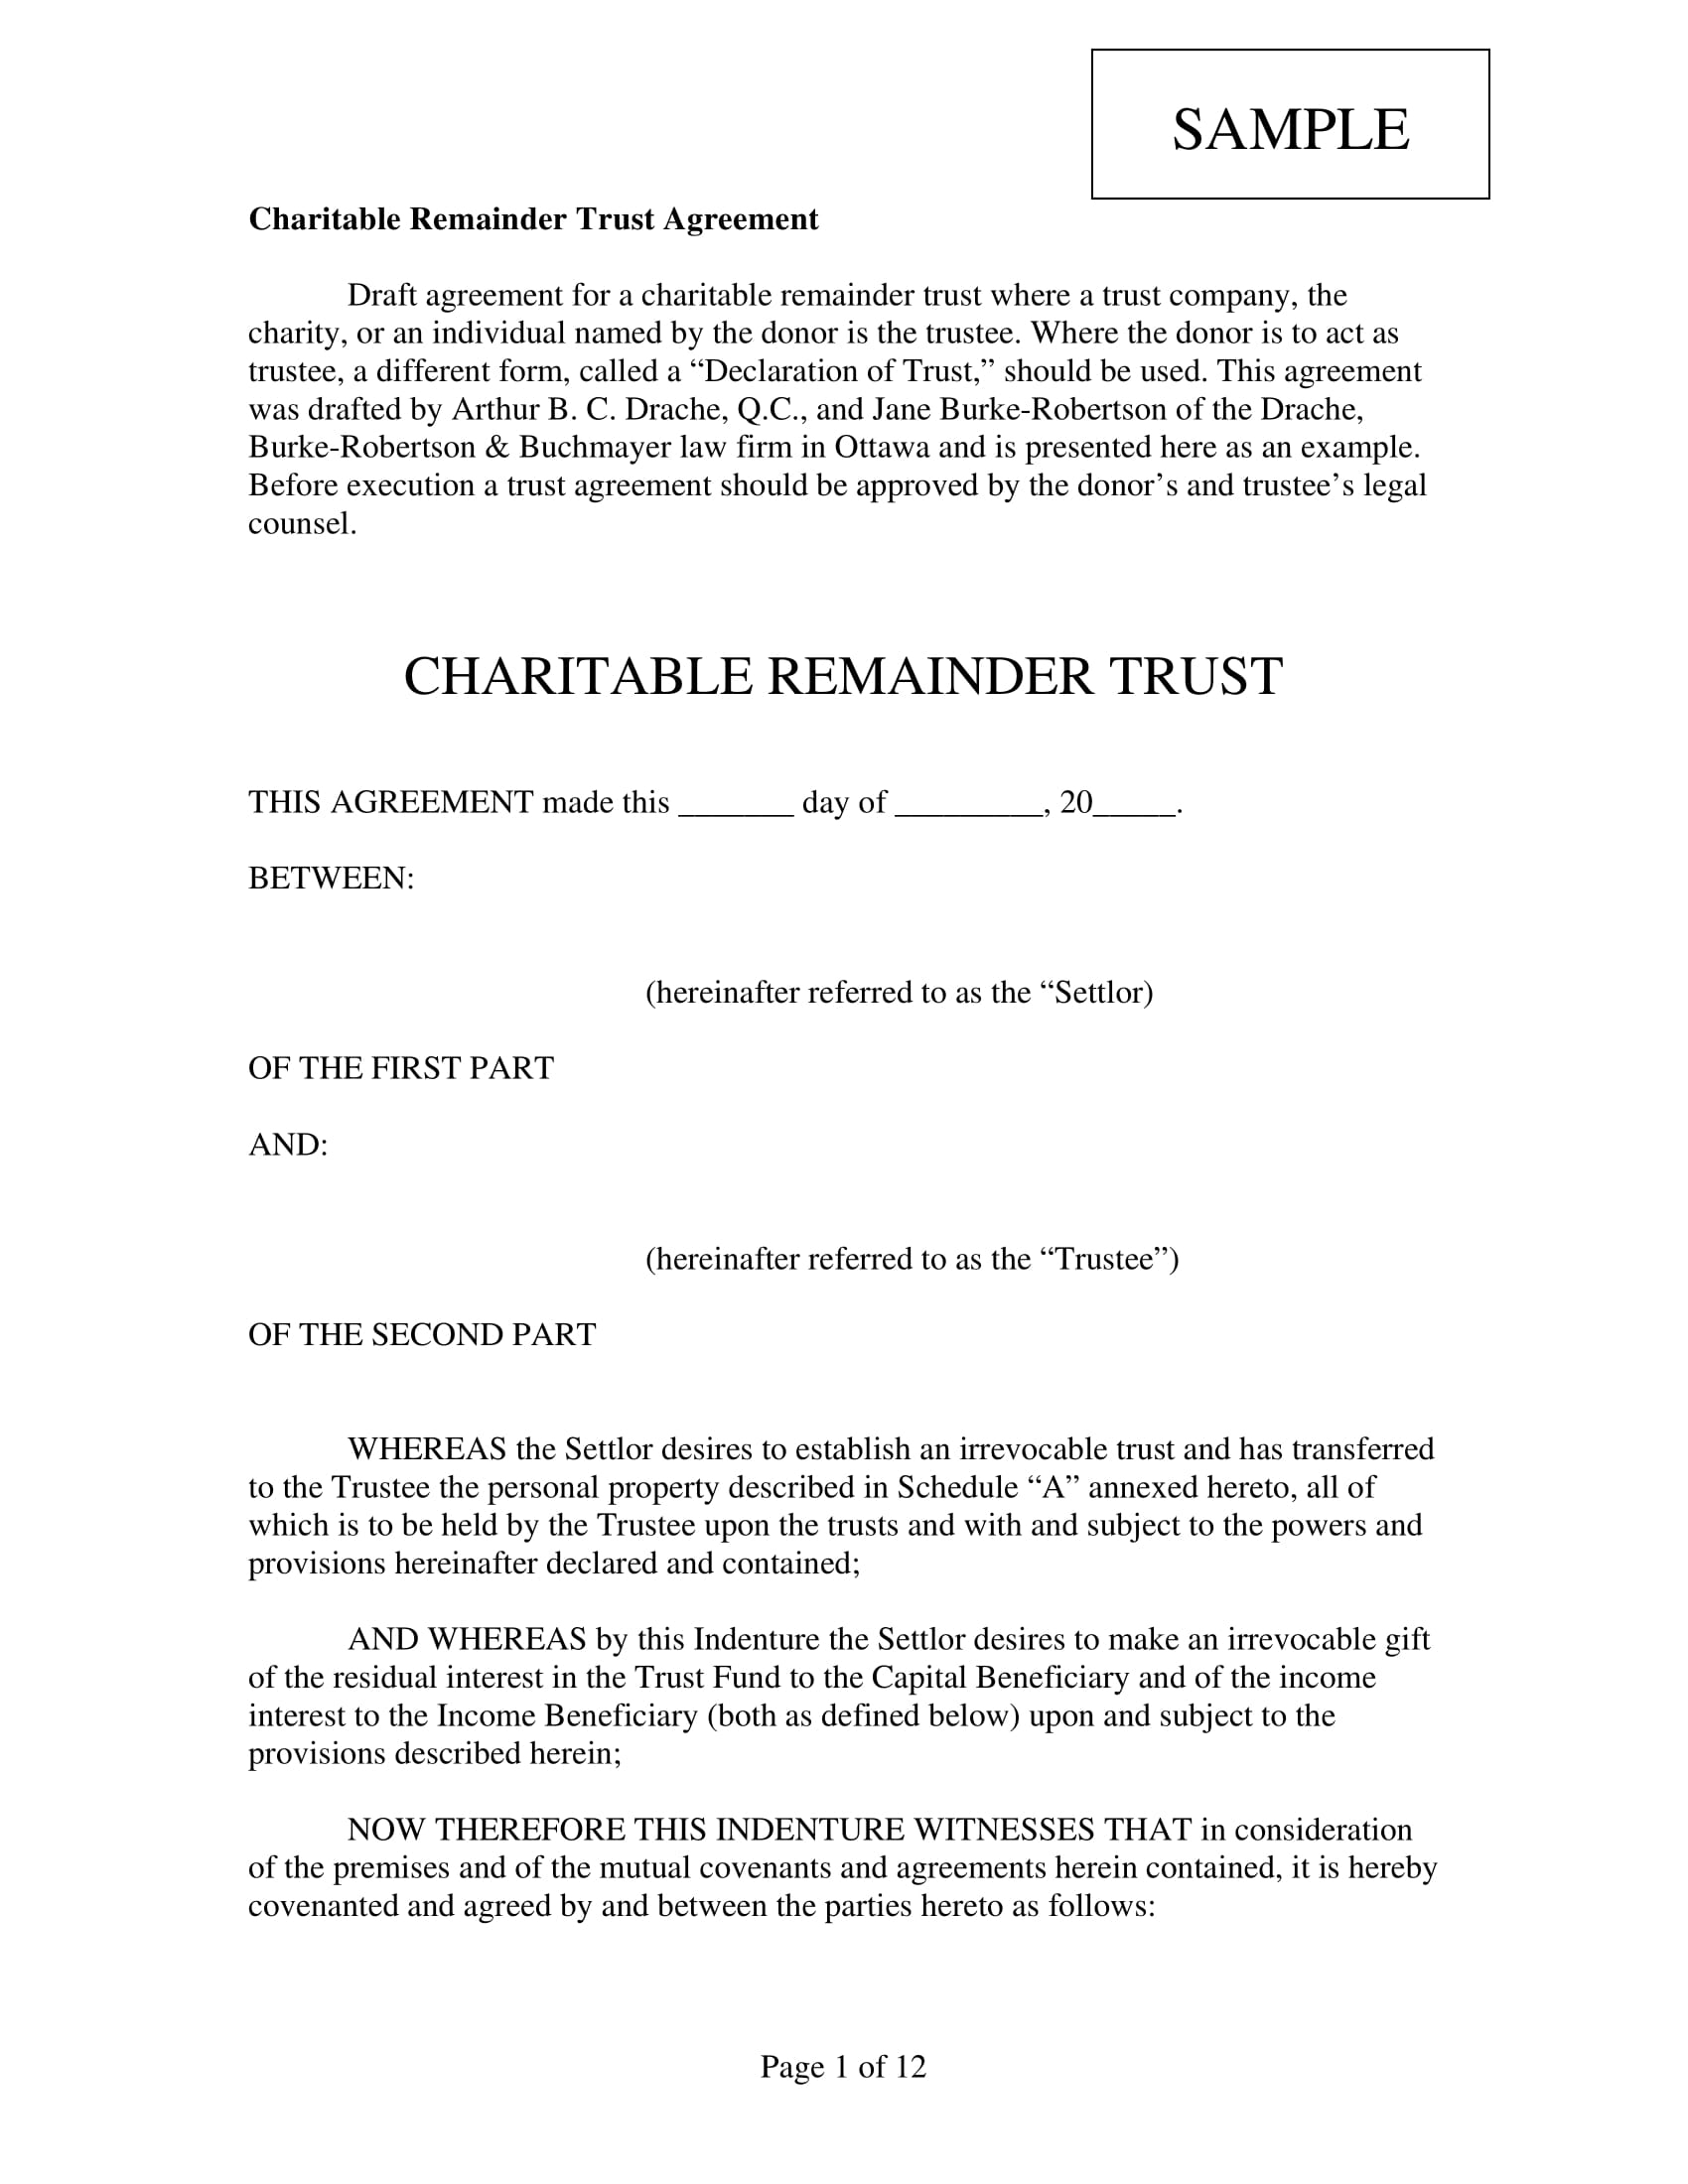 charitable remainder trust agreement contract form 01